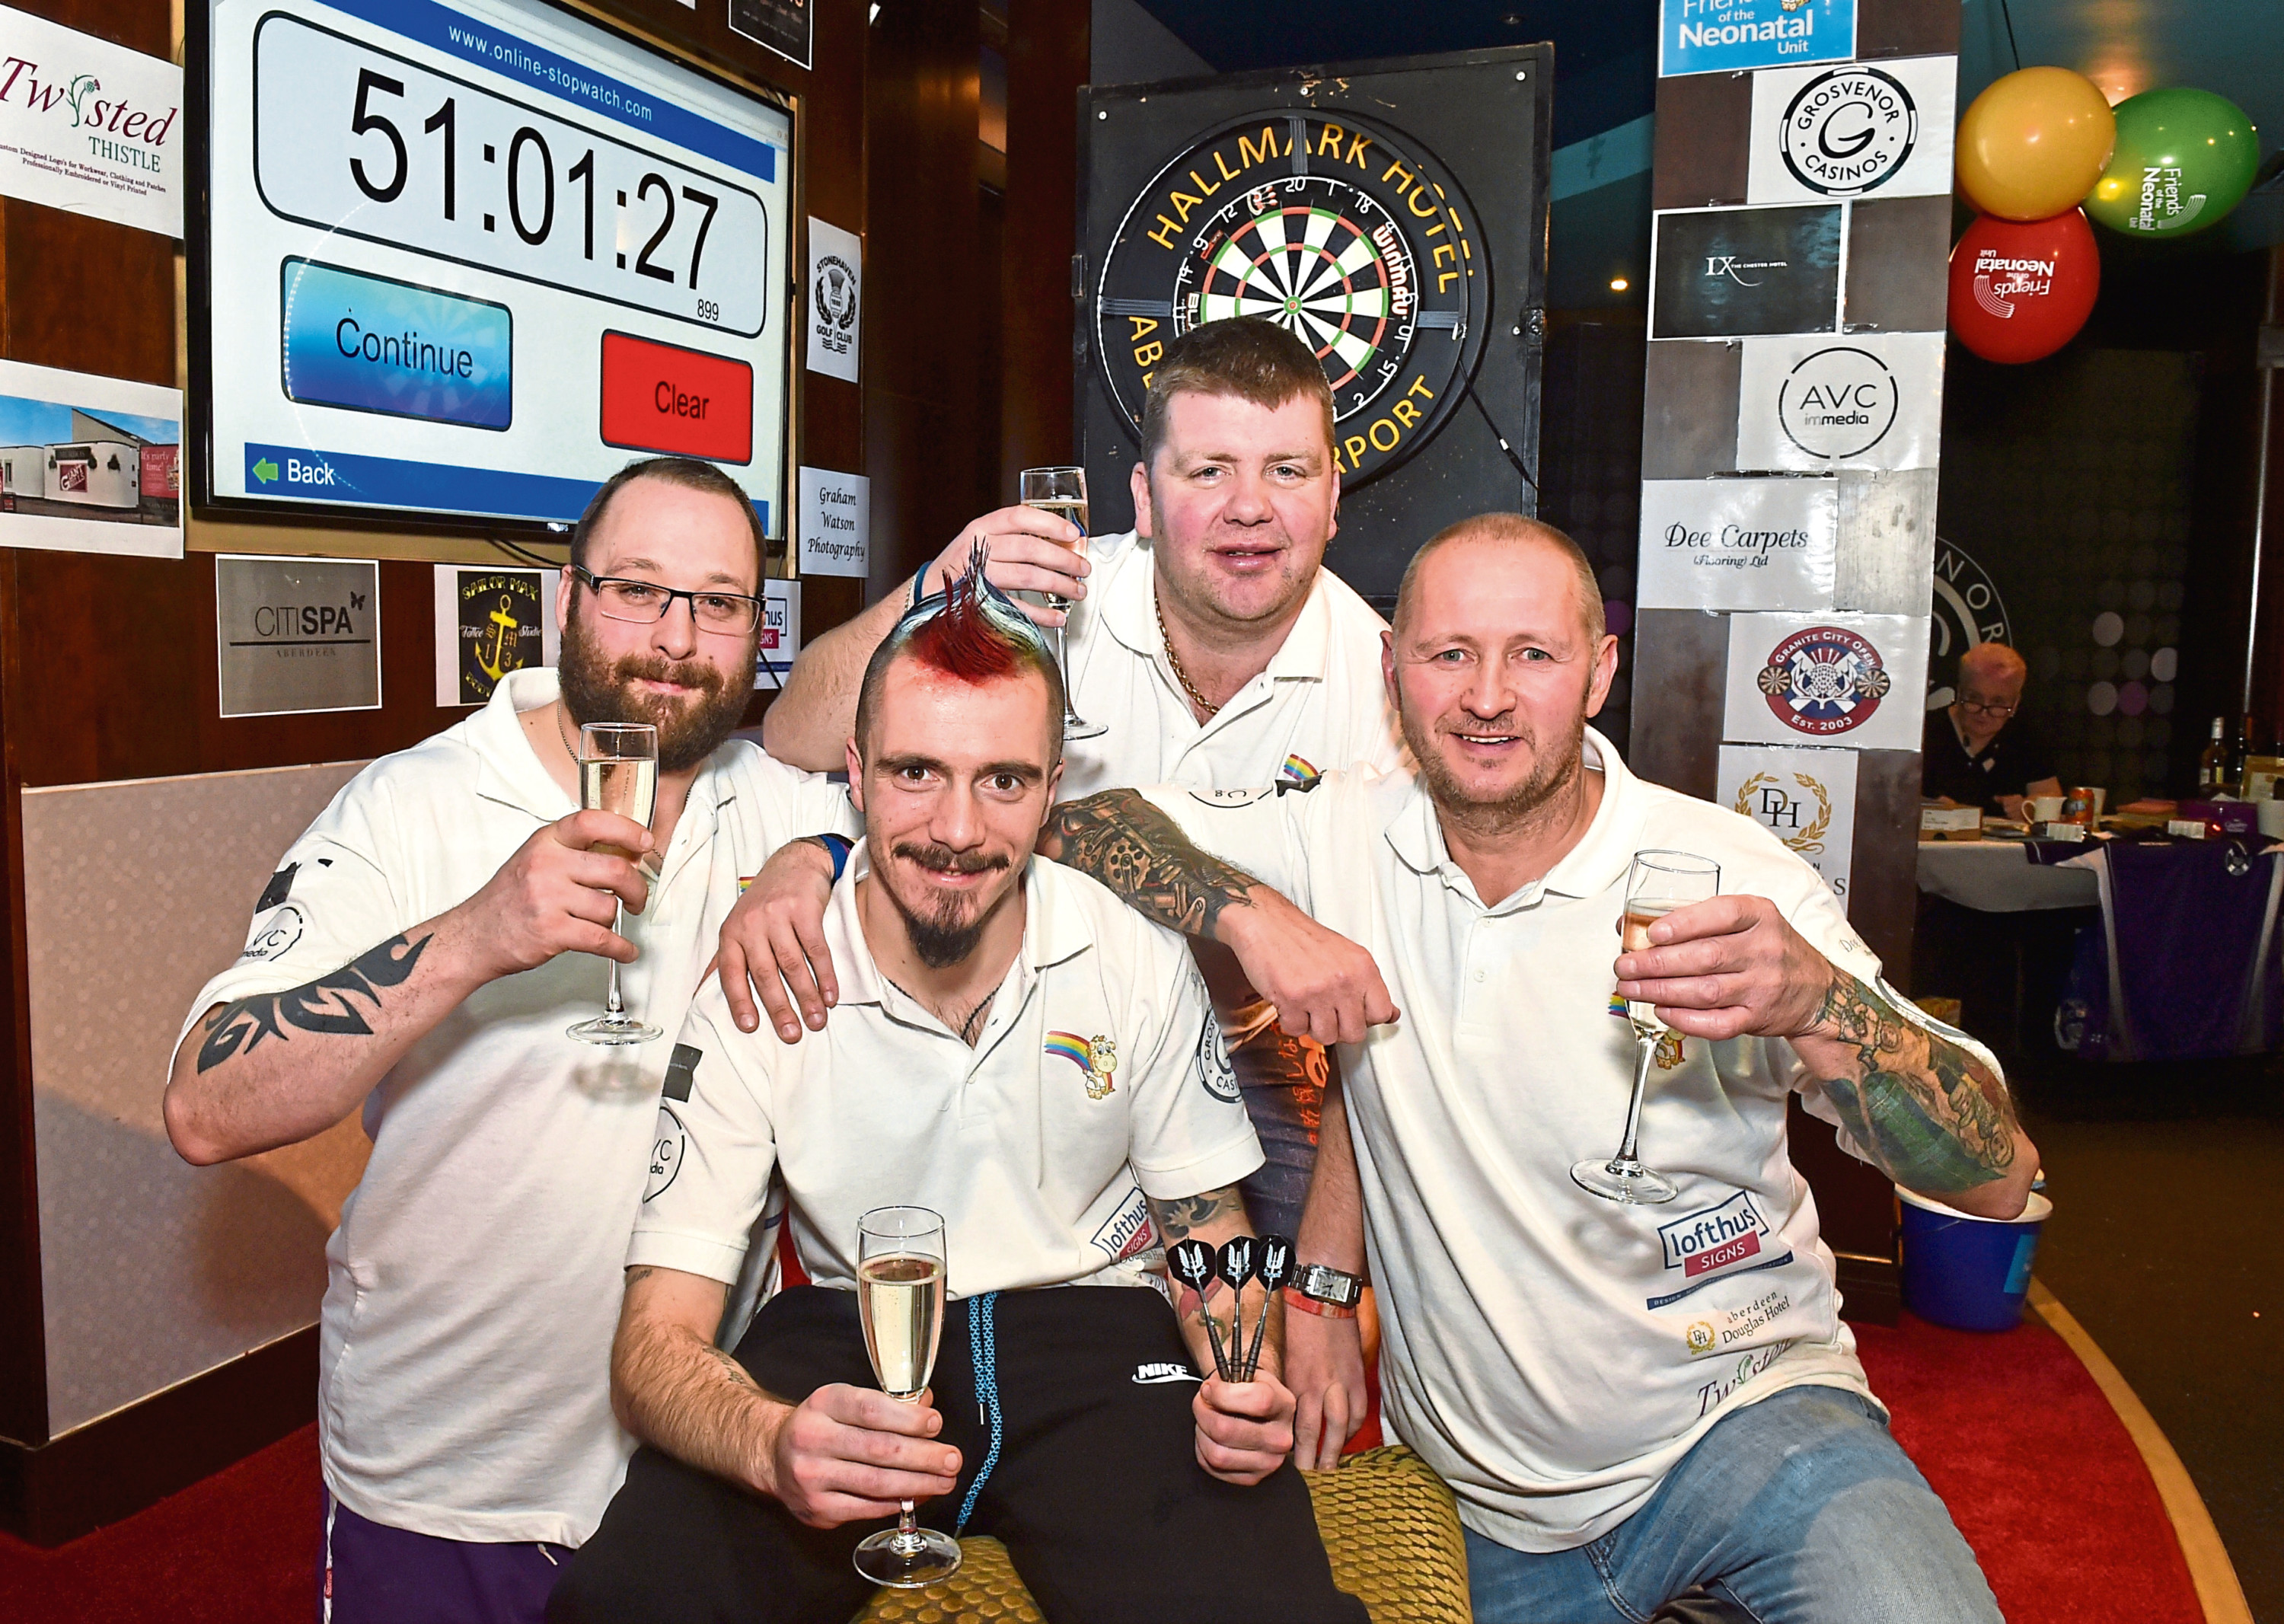 Record-breaking darts fundraisers, from left, Dave Matthew, Lewis Grant. Neil Munro and Mark Taylor